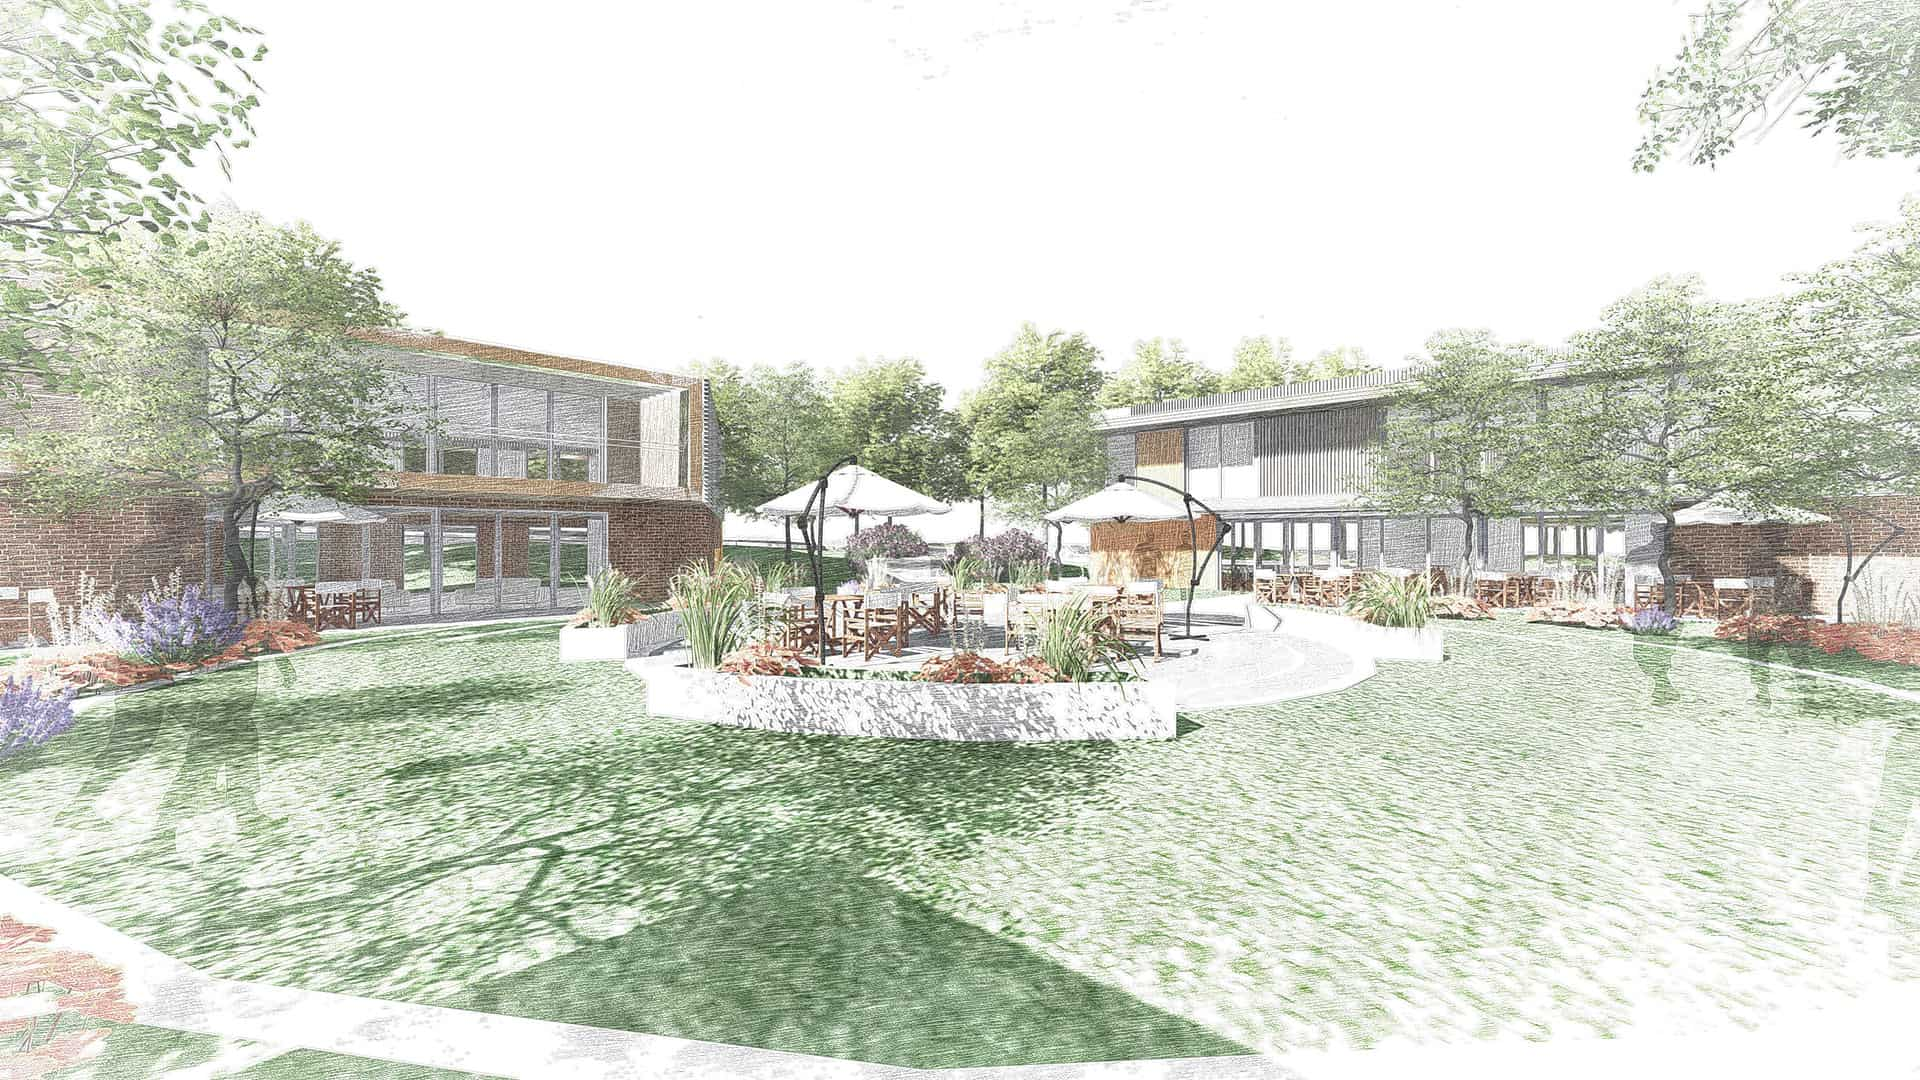 Rusticus Care Home masterplan design specialising in the care of dementia patients